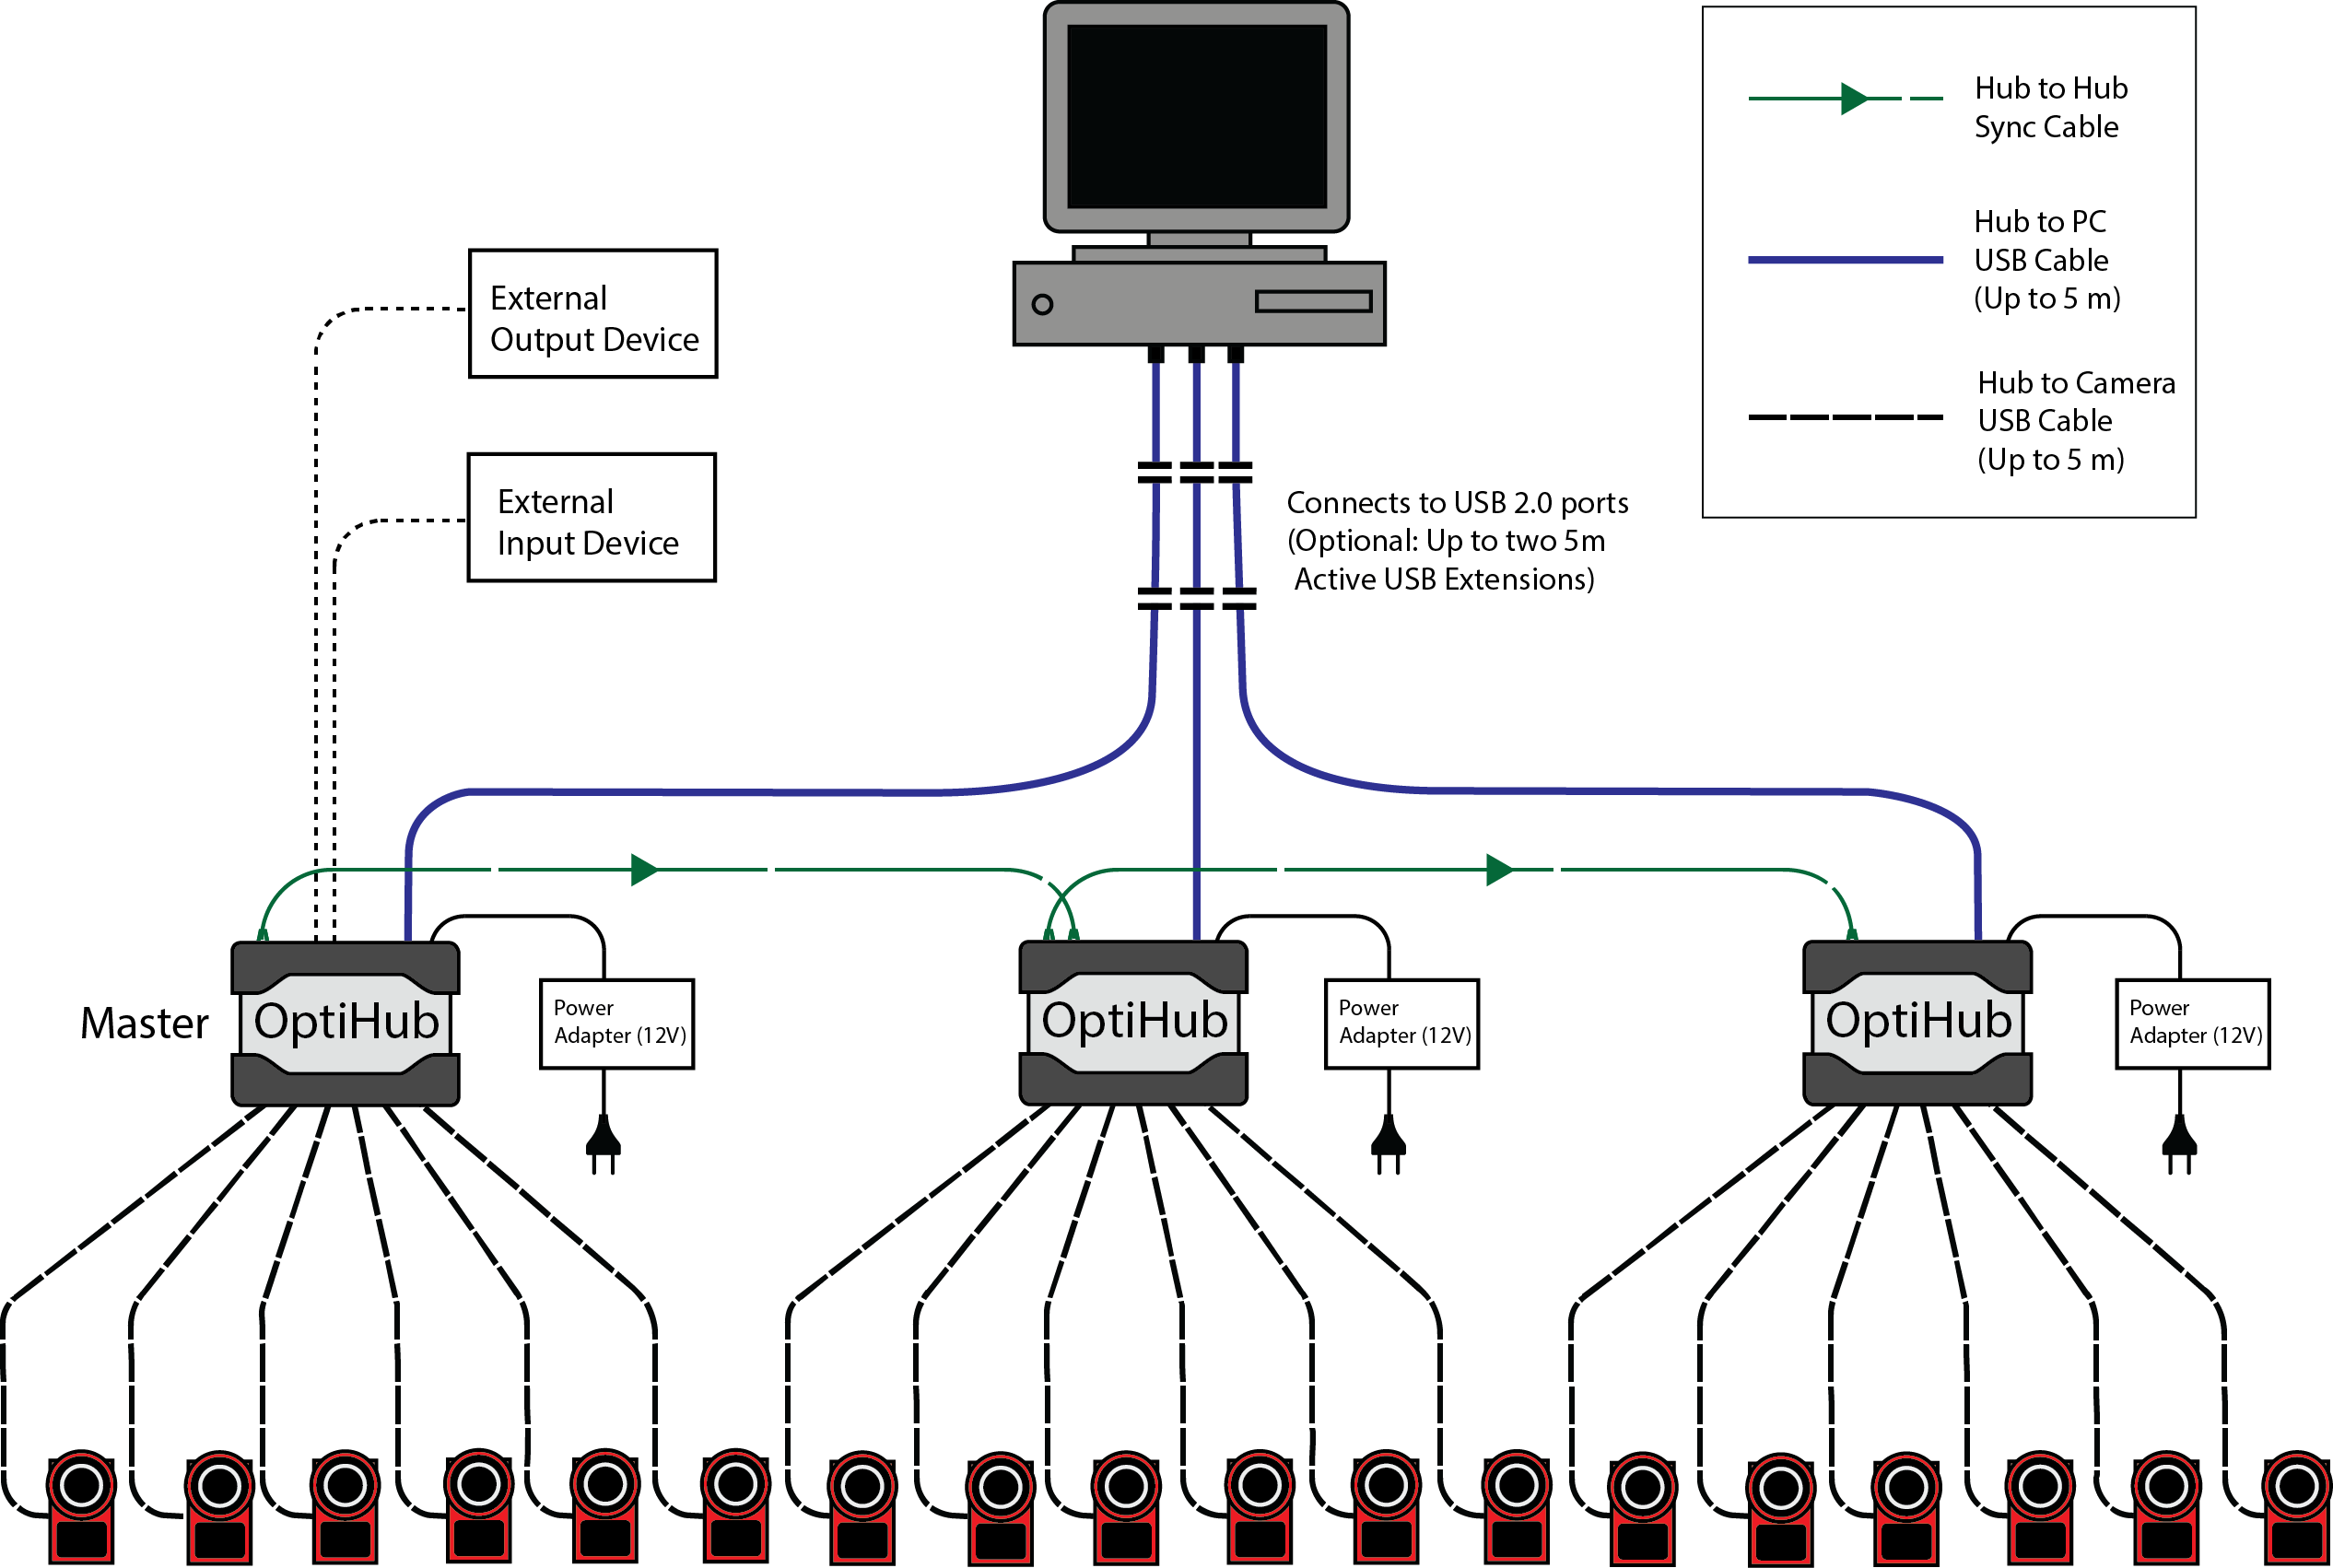 mini usb power wiring diagram air compressor schematic file png naturalpoint product documentation ver 2 1 16 30 13 january 2016